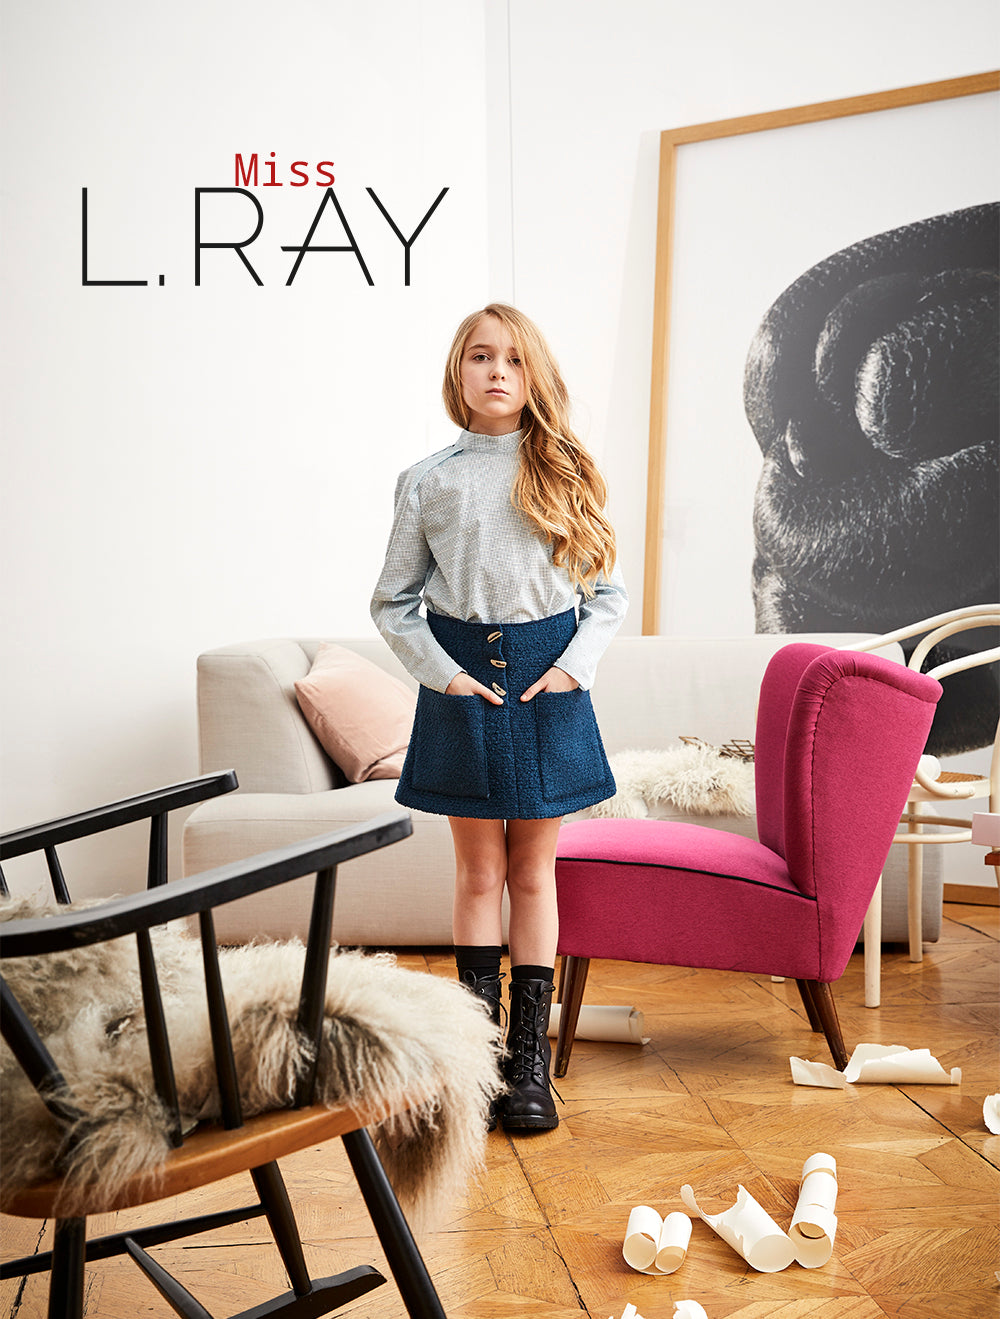 Miss L. Ray teen fashion and childrenswear AW 2018 cover image